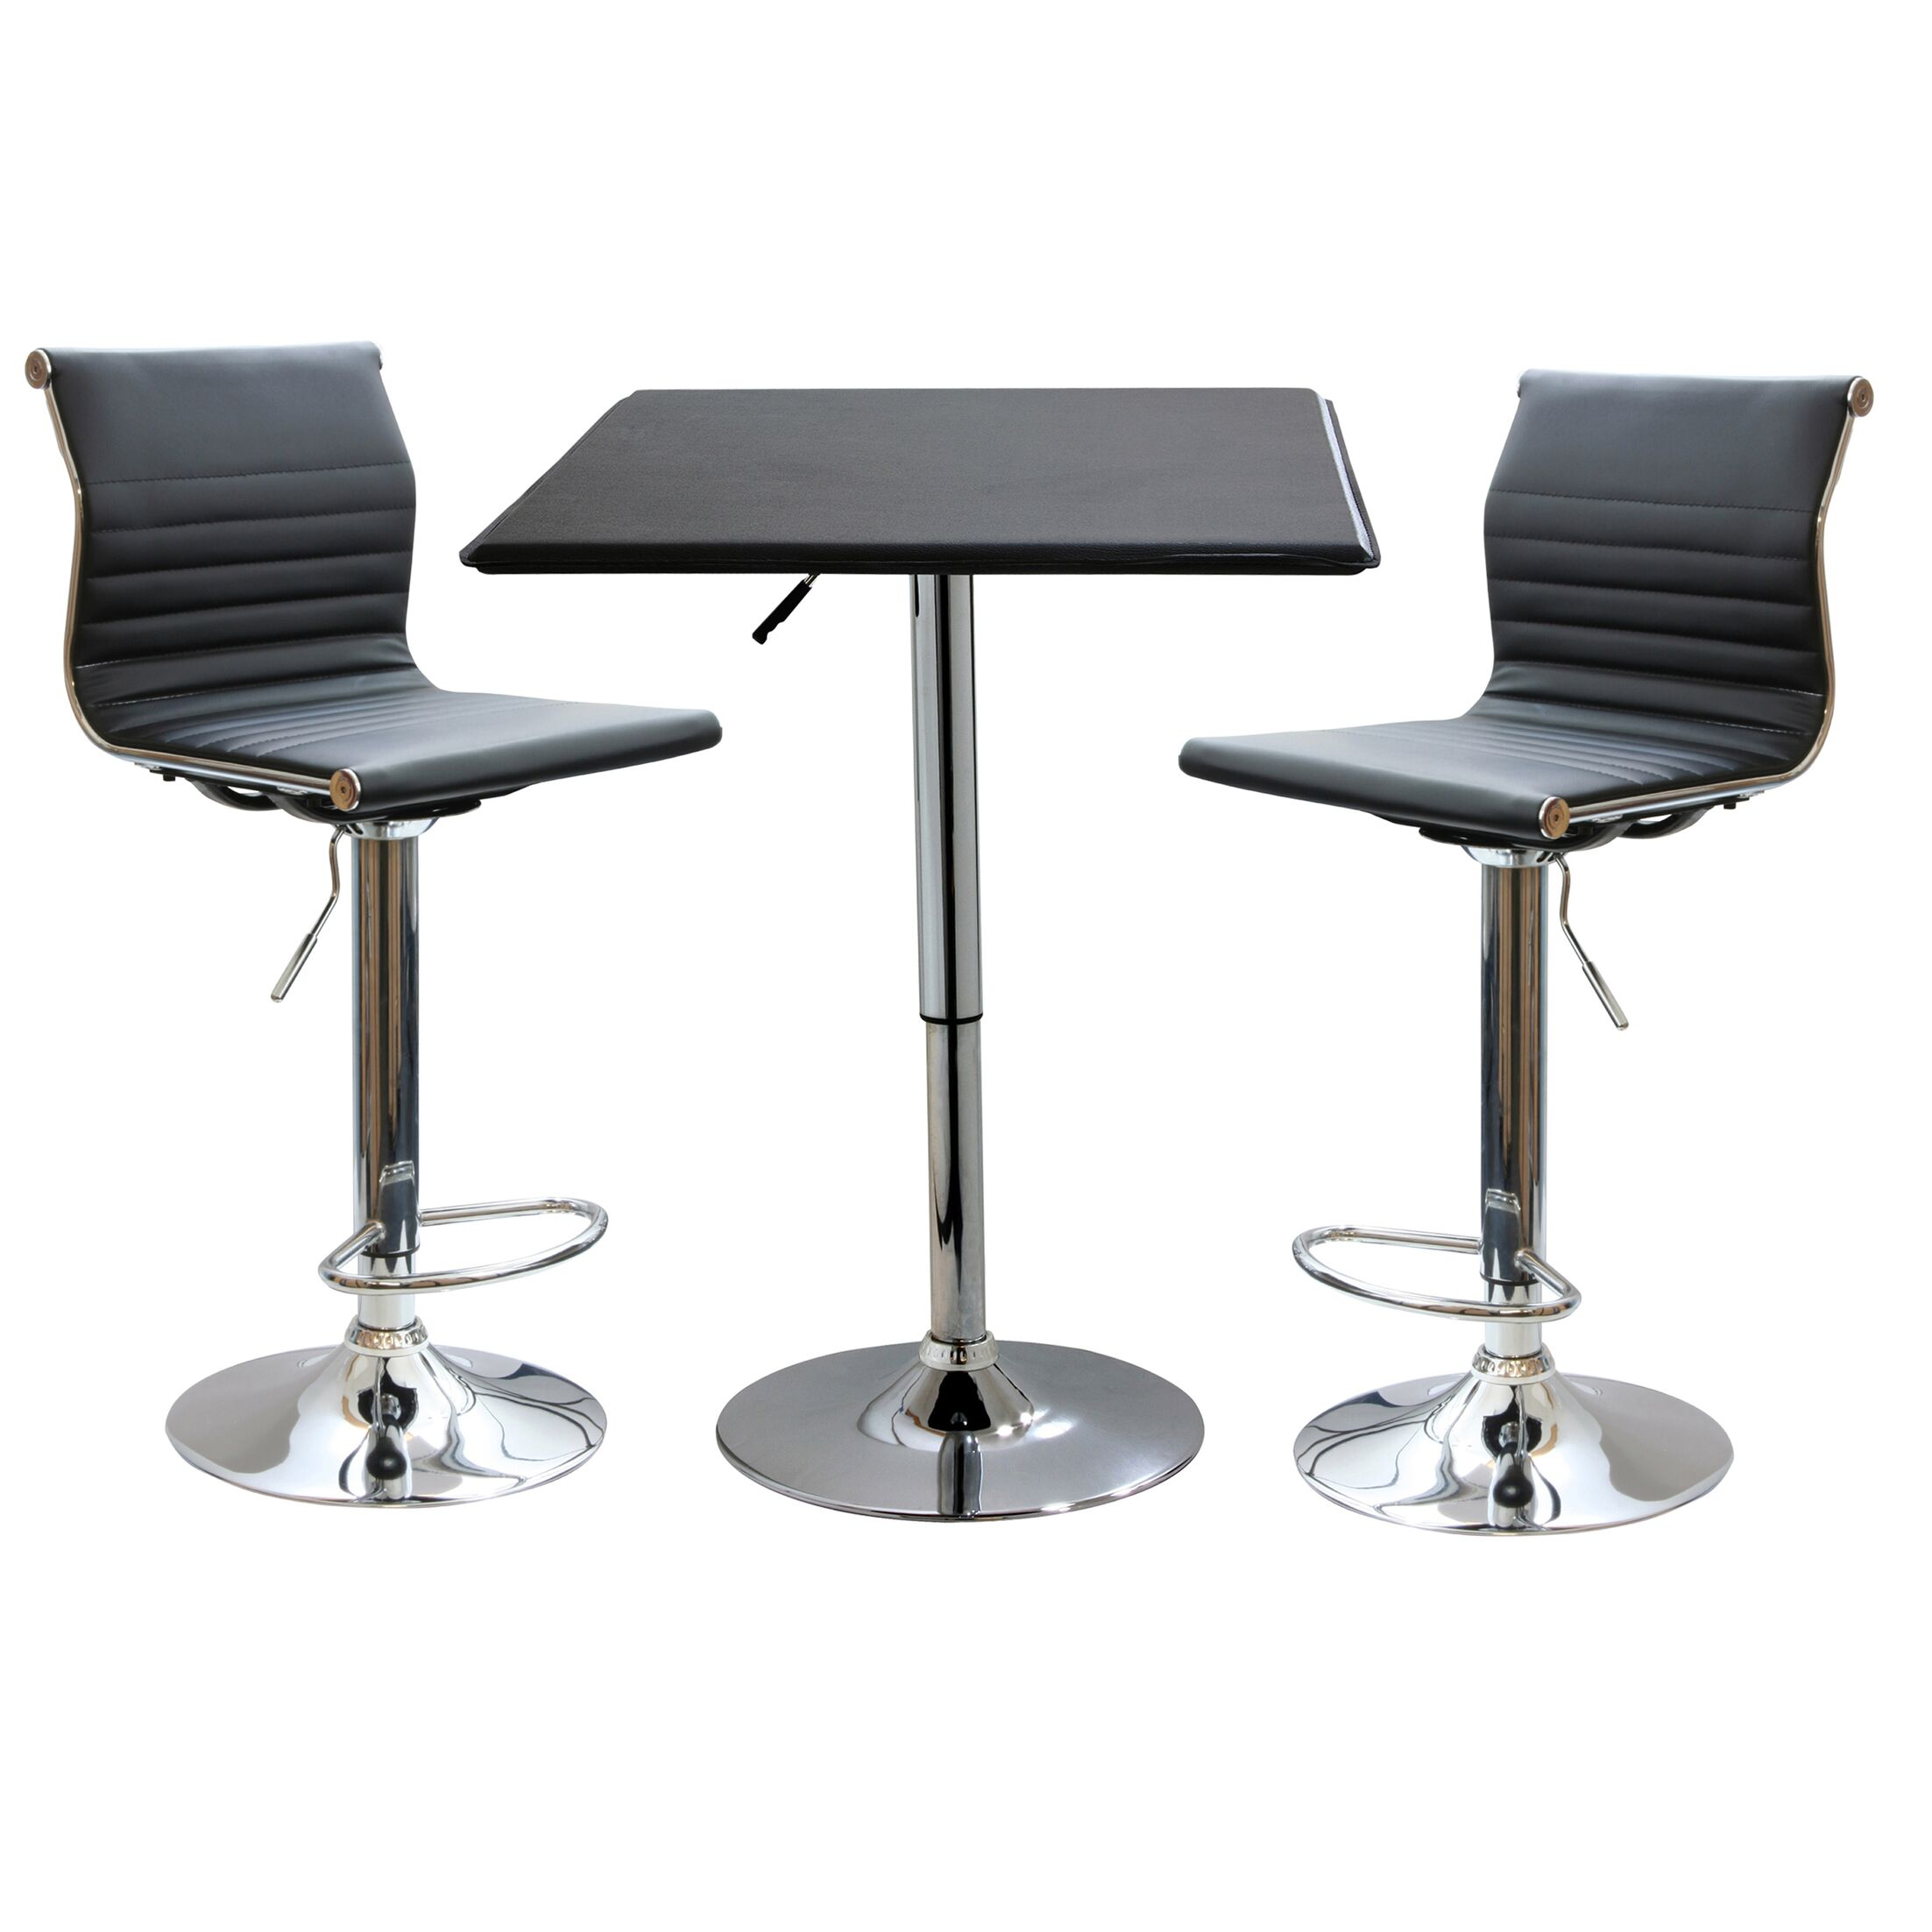 Dining Table Sets Southampton Ii 3 Piece Adjustable Height Pub Table